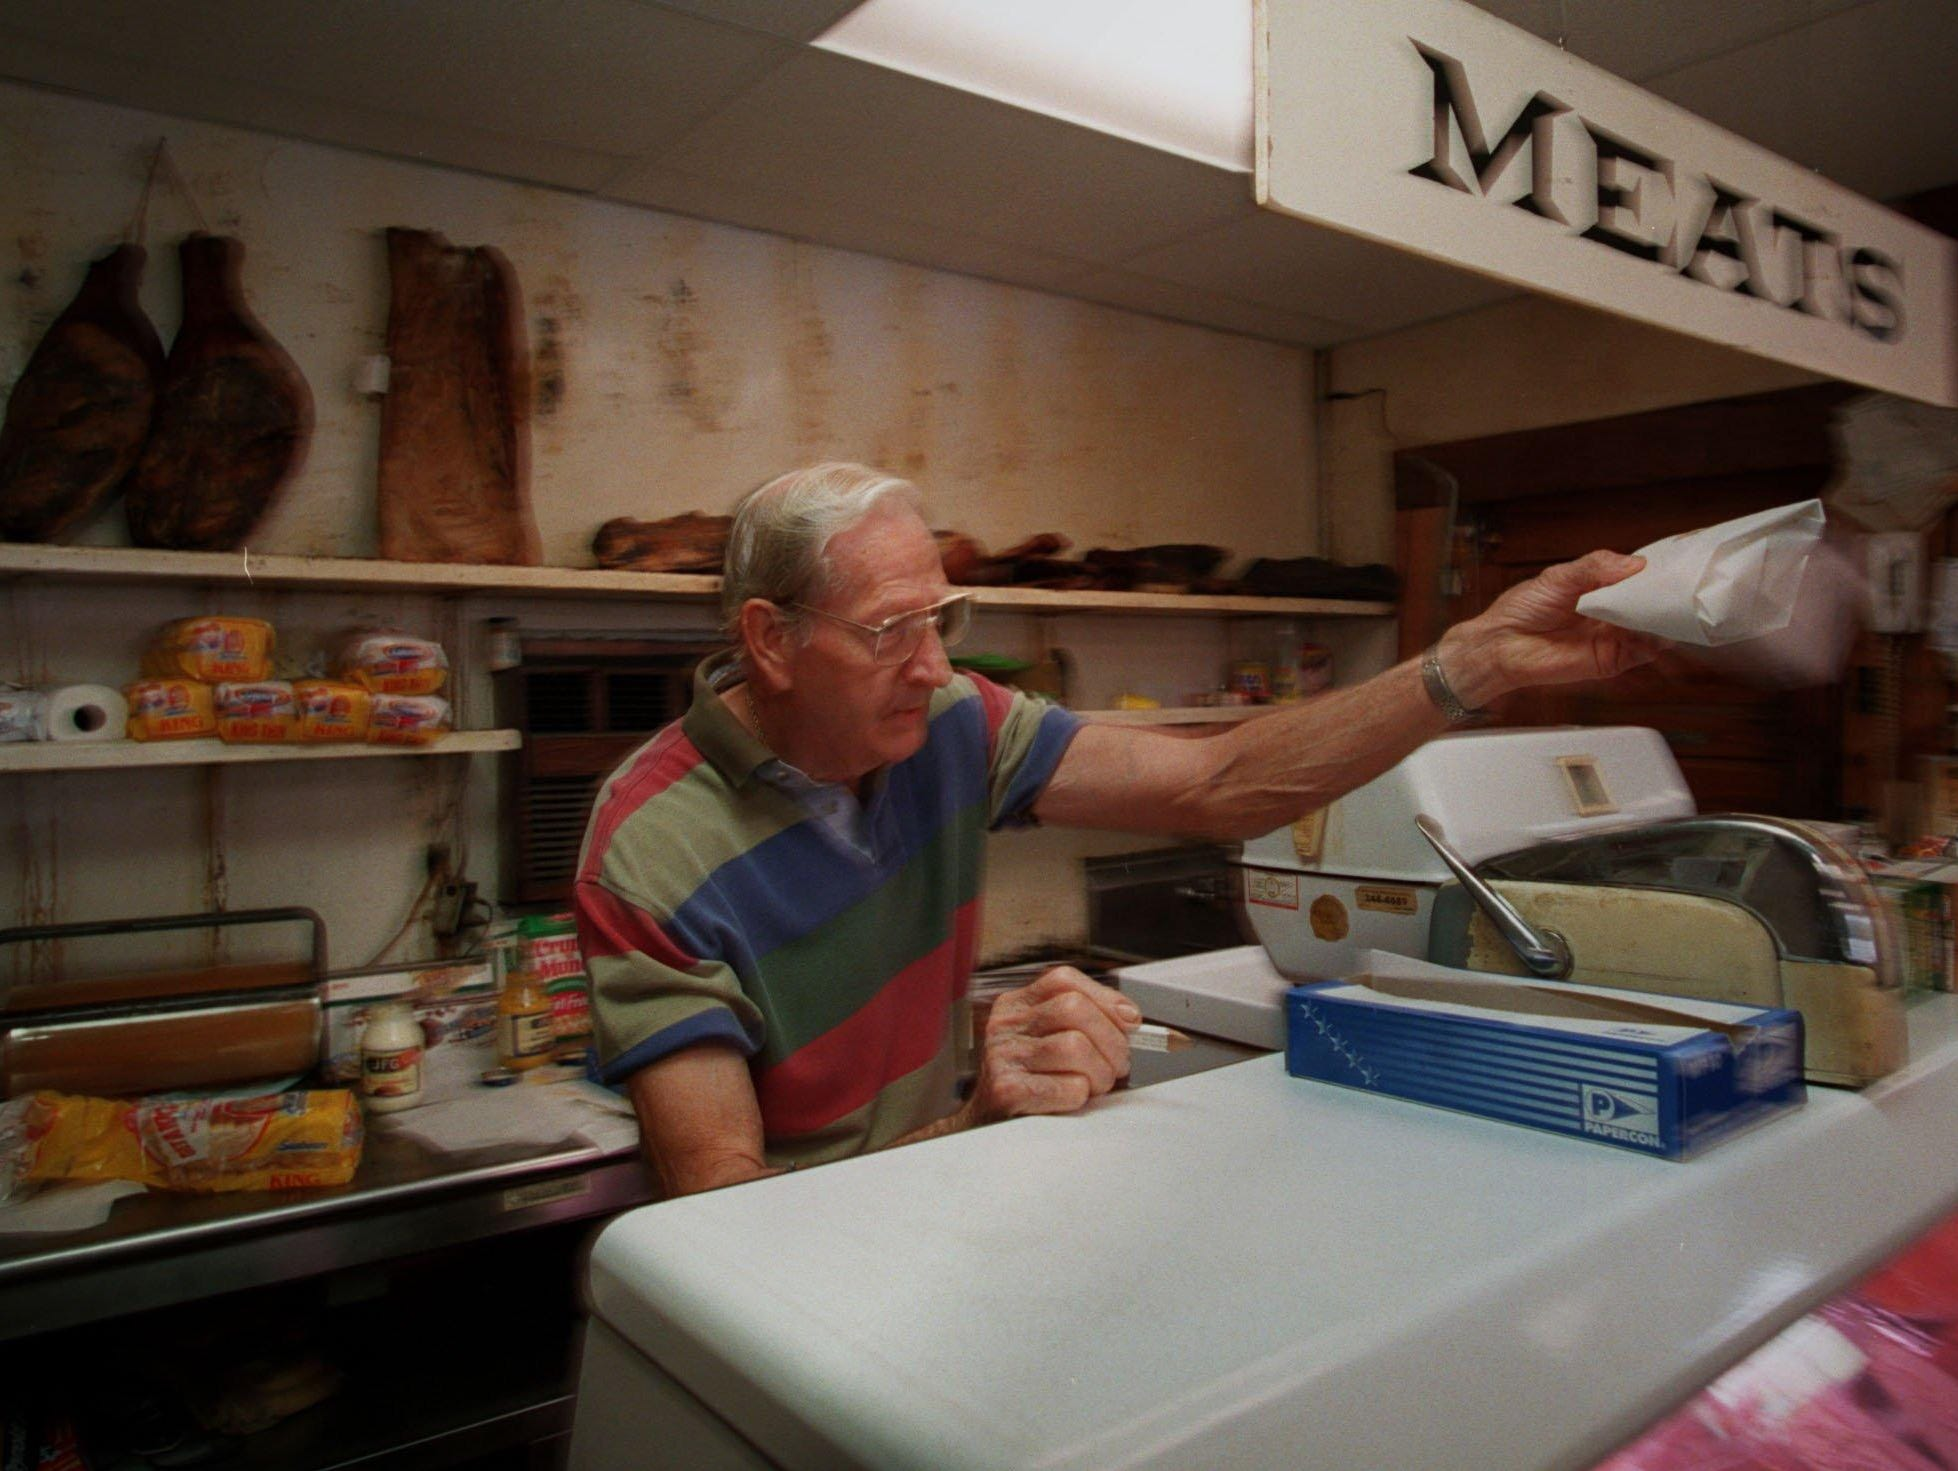 With aged and smoked meat on the shelf behind him, the owner of Terry's Market, Waymen Terry, handed a freshly made sandwich over the counter to a customer.